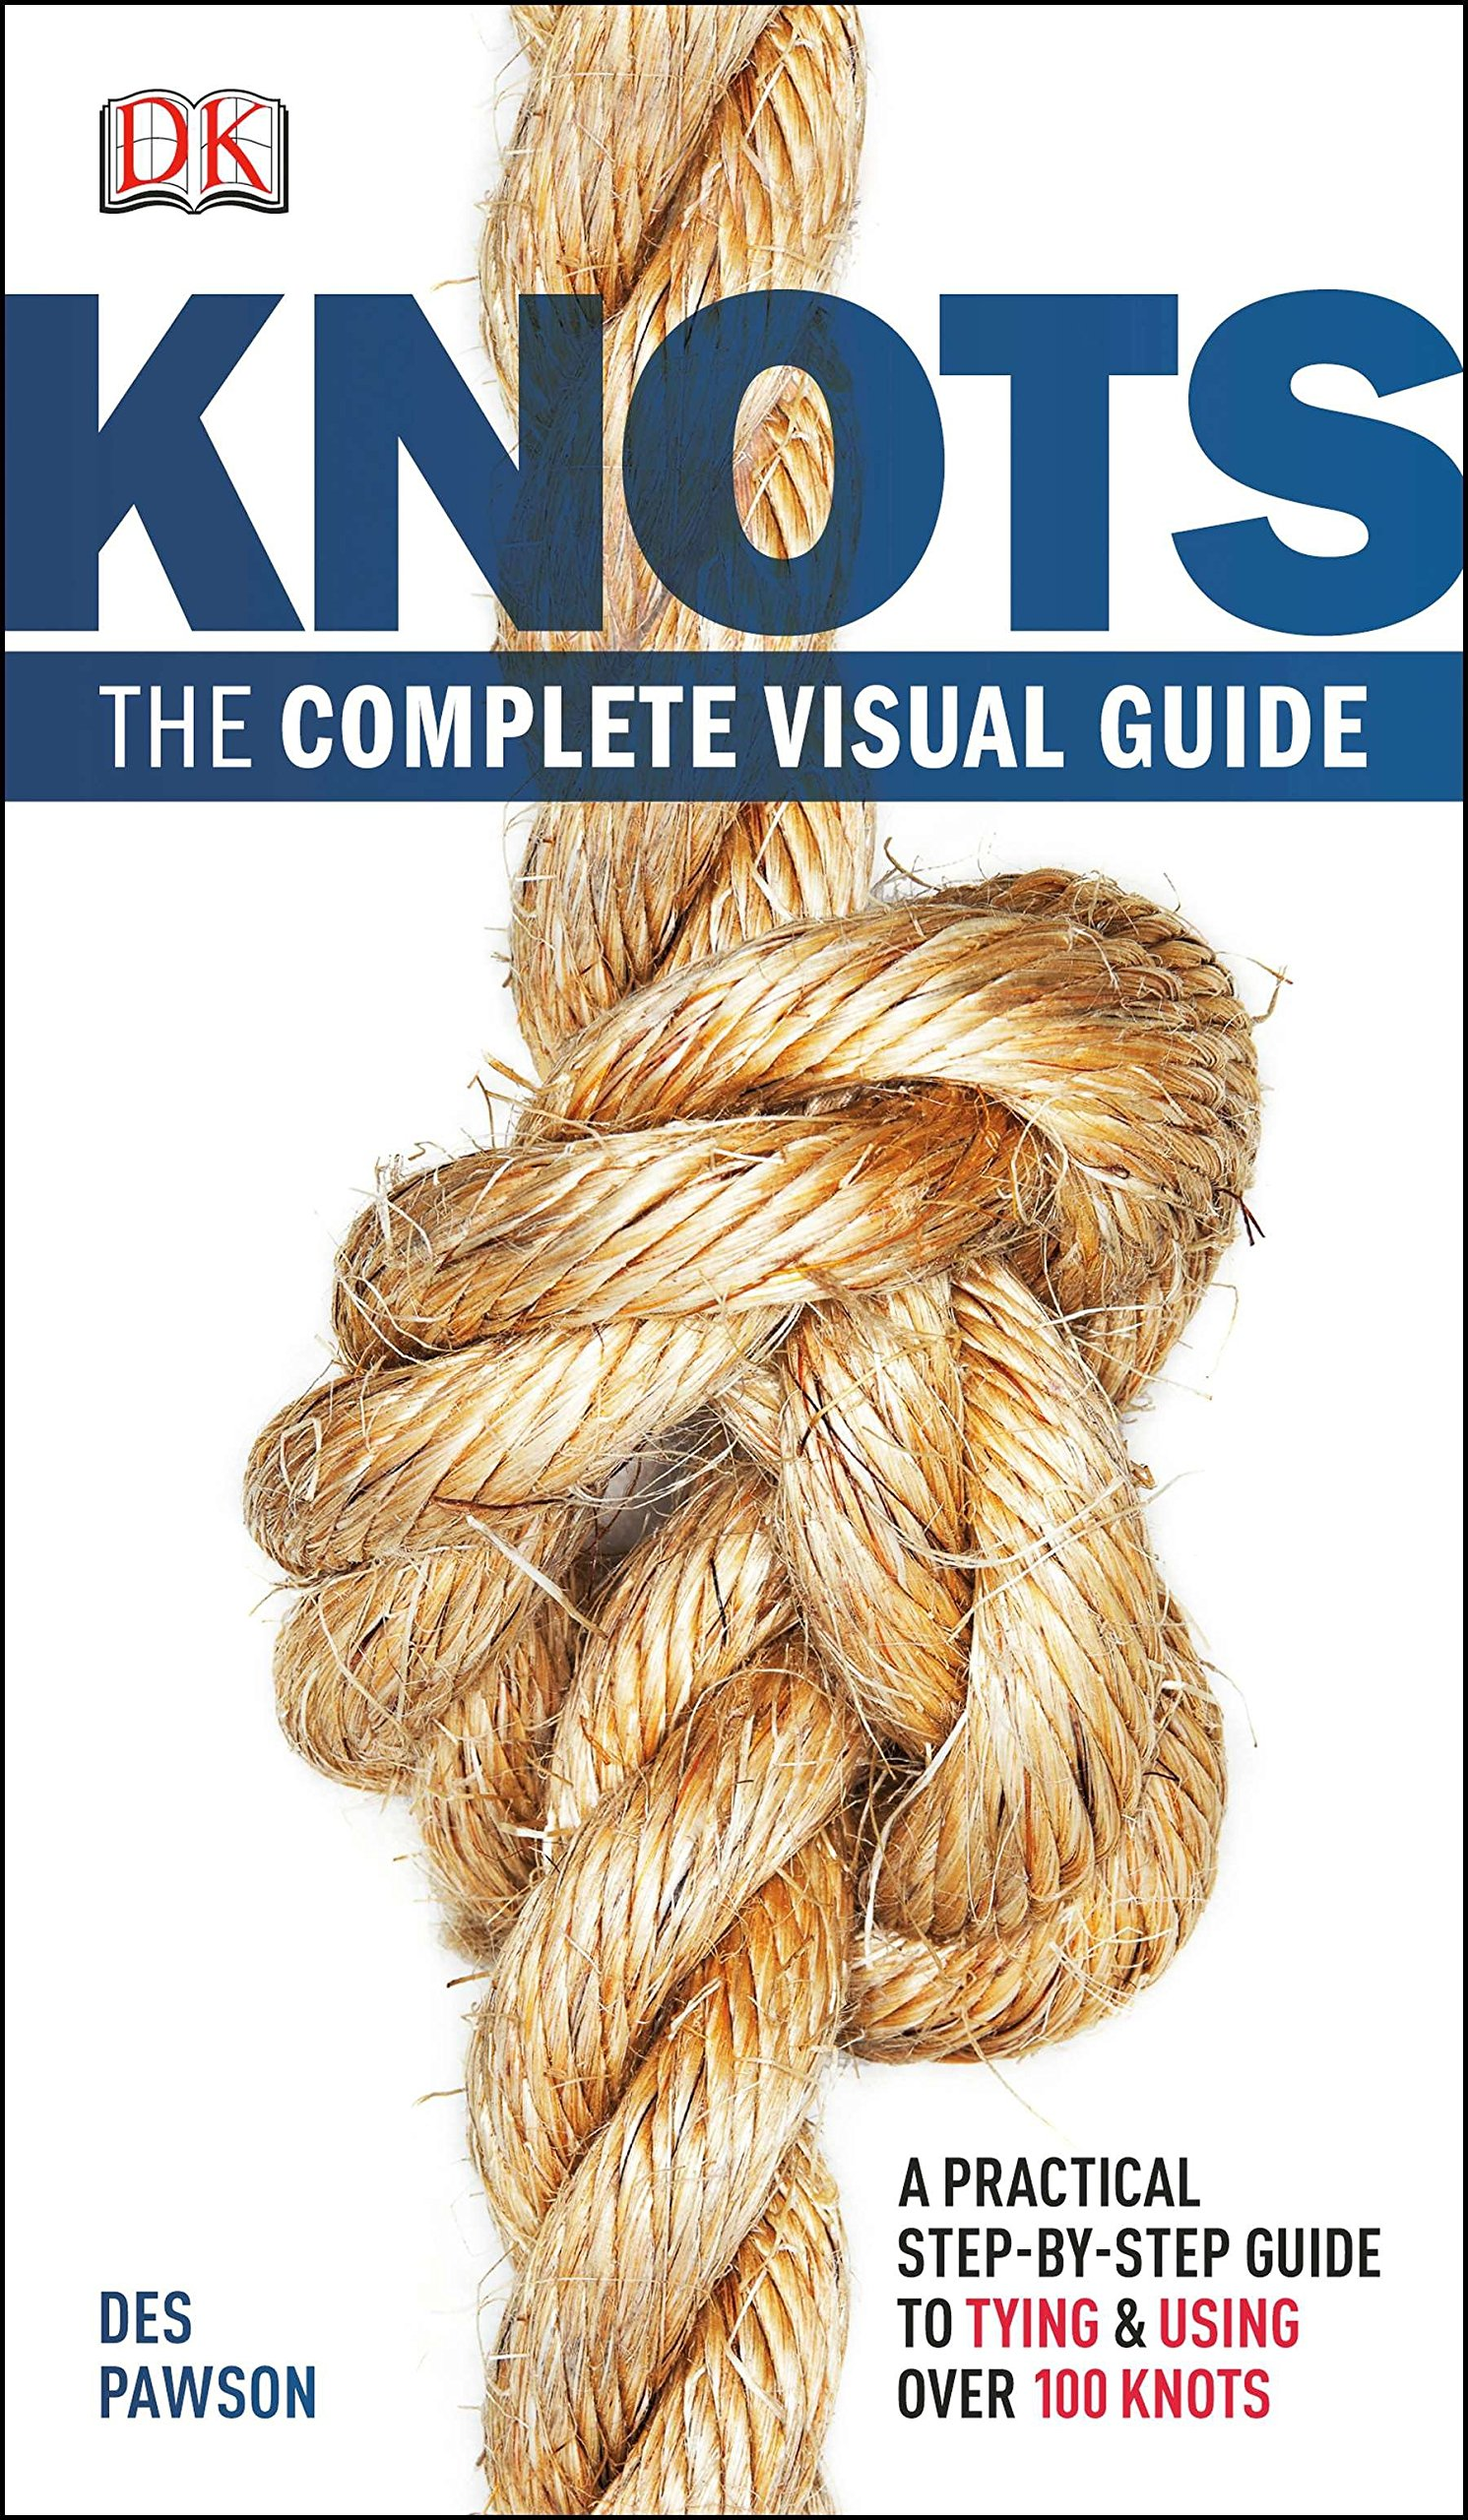 Knots:The Complete Visual Guide: A Practical Step-by-Step Guide to Tying and Using over 100 Knots by DK